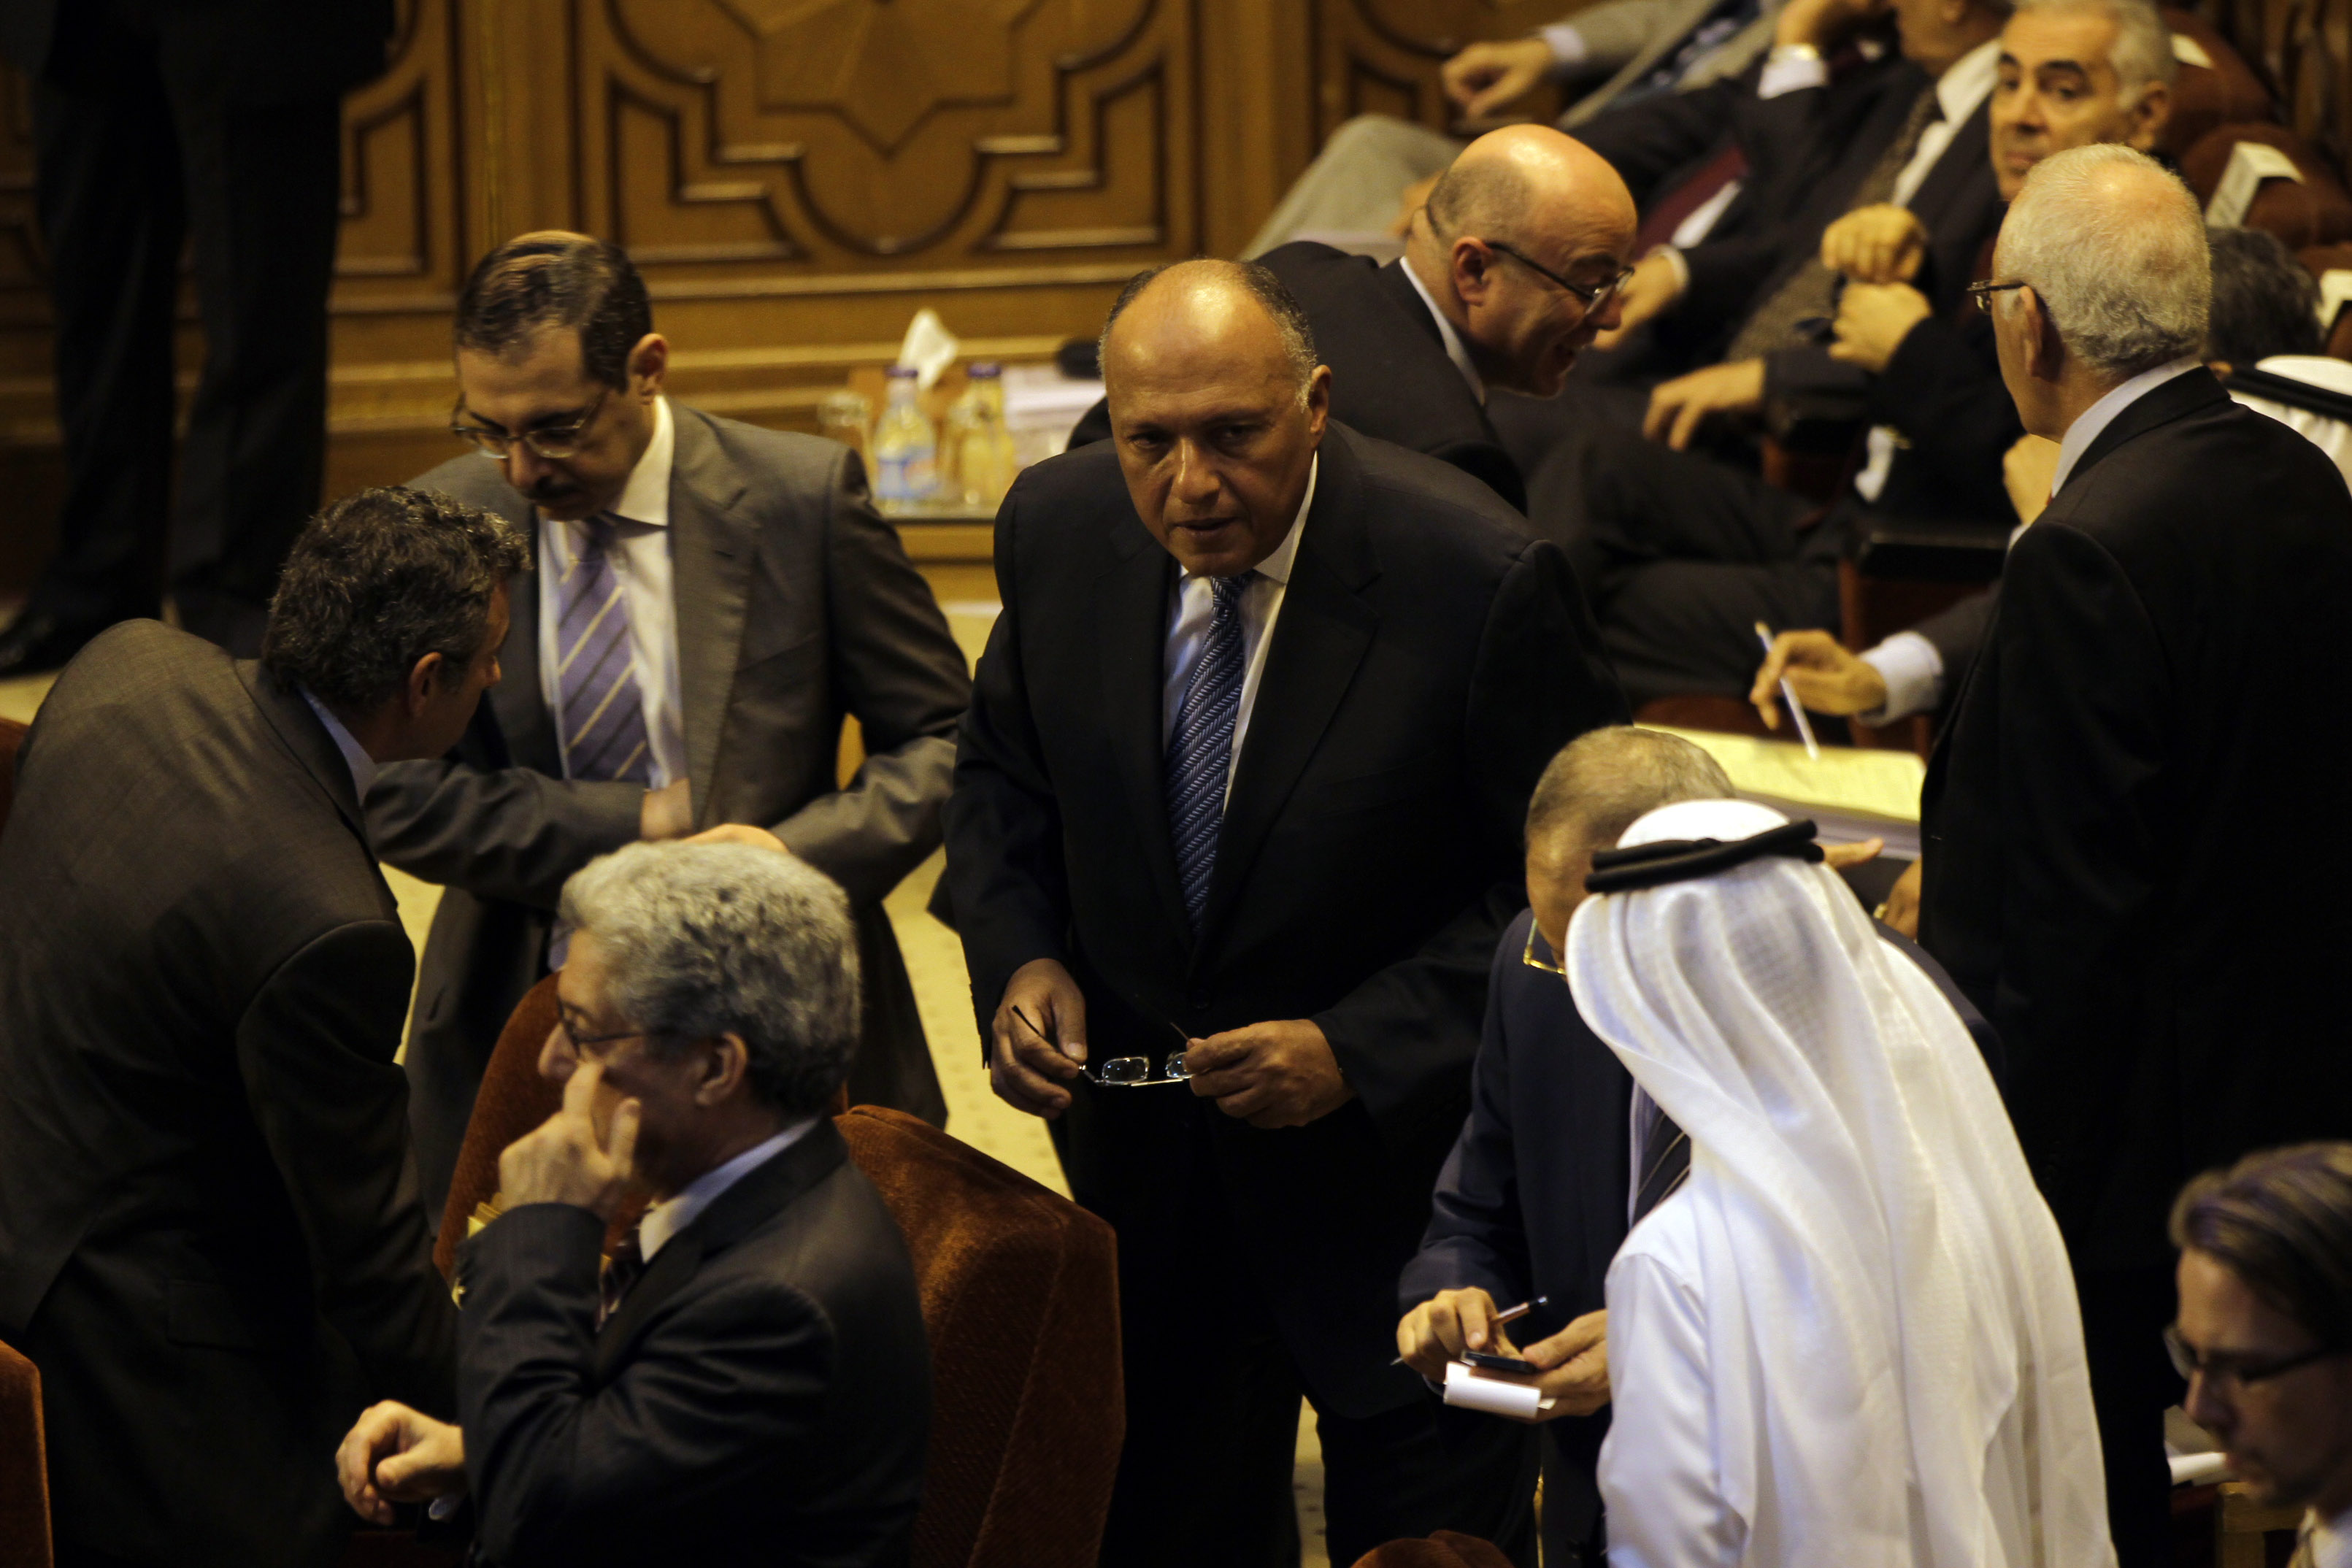 Ministers from the 22 Arab League member states have conducted meetings with their Egyptian counterpart Sameh Shoukry and President Abdel Fattah Al-Sisi at a time when the region faces a number of crises. (Photo by AHmed Al-Malky/DNE)